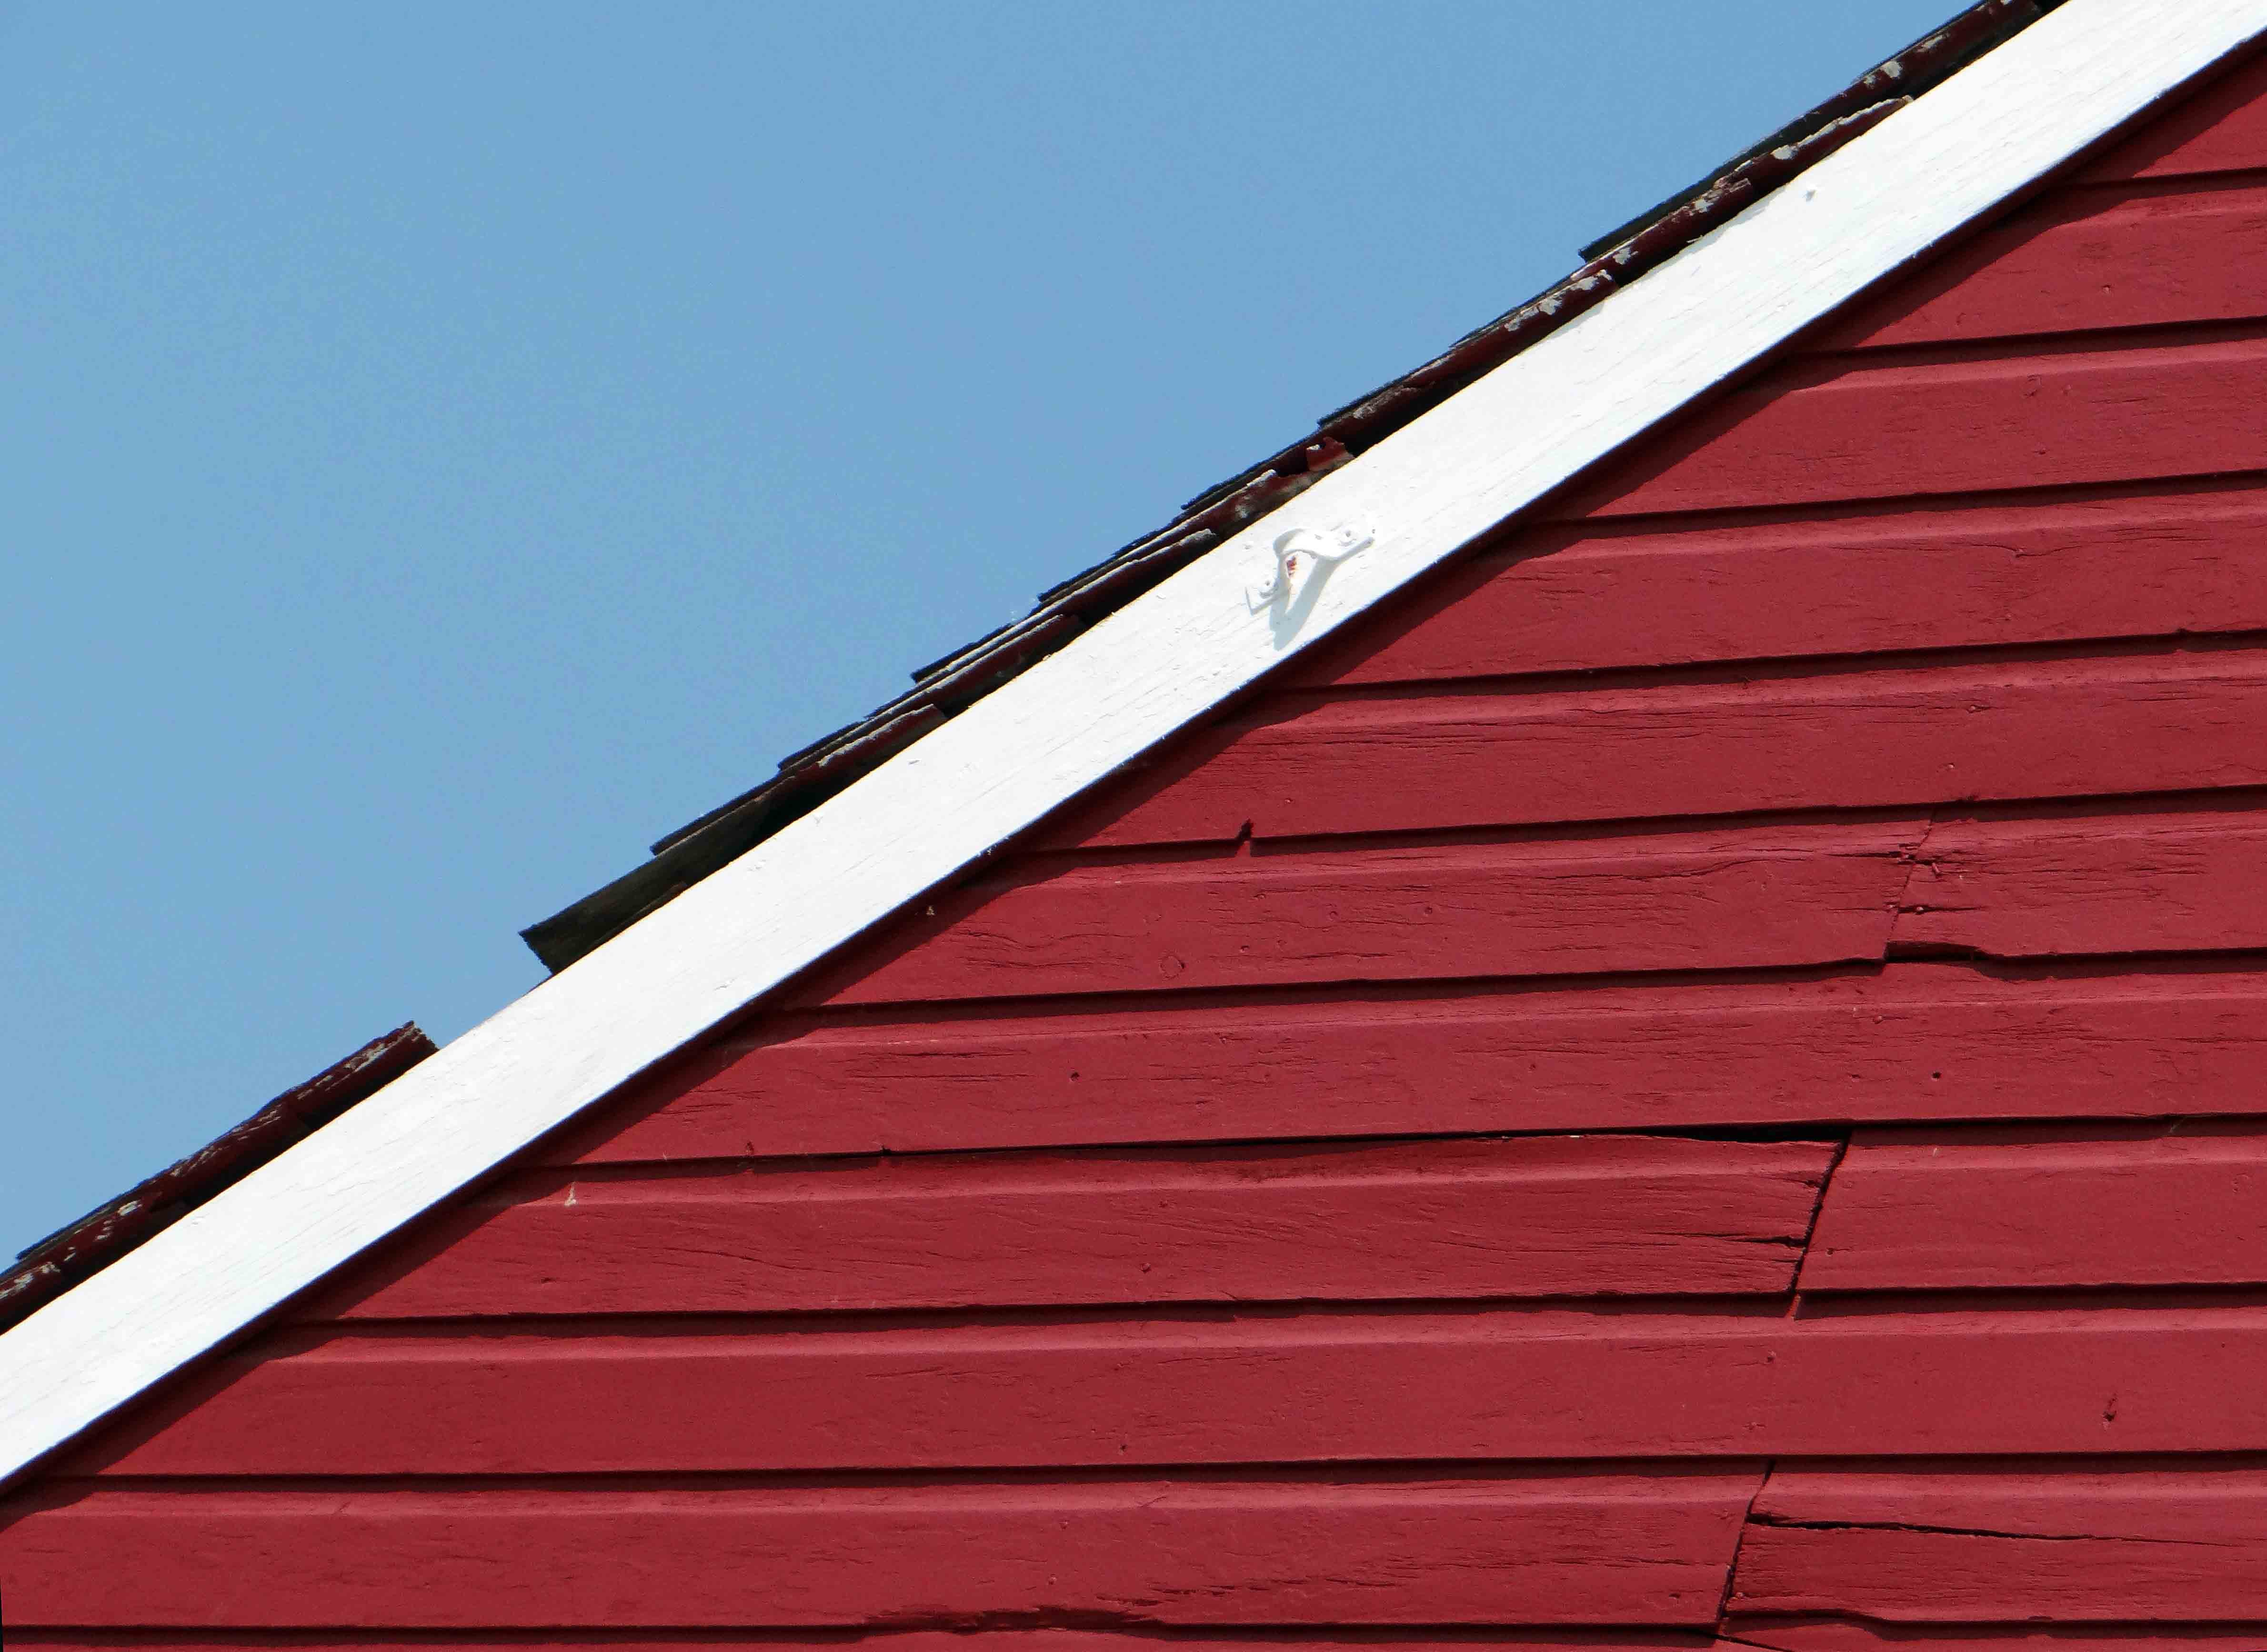 Free stock photo of artistic, blue sky, red